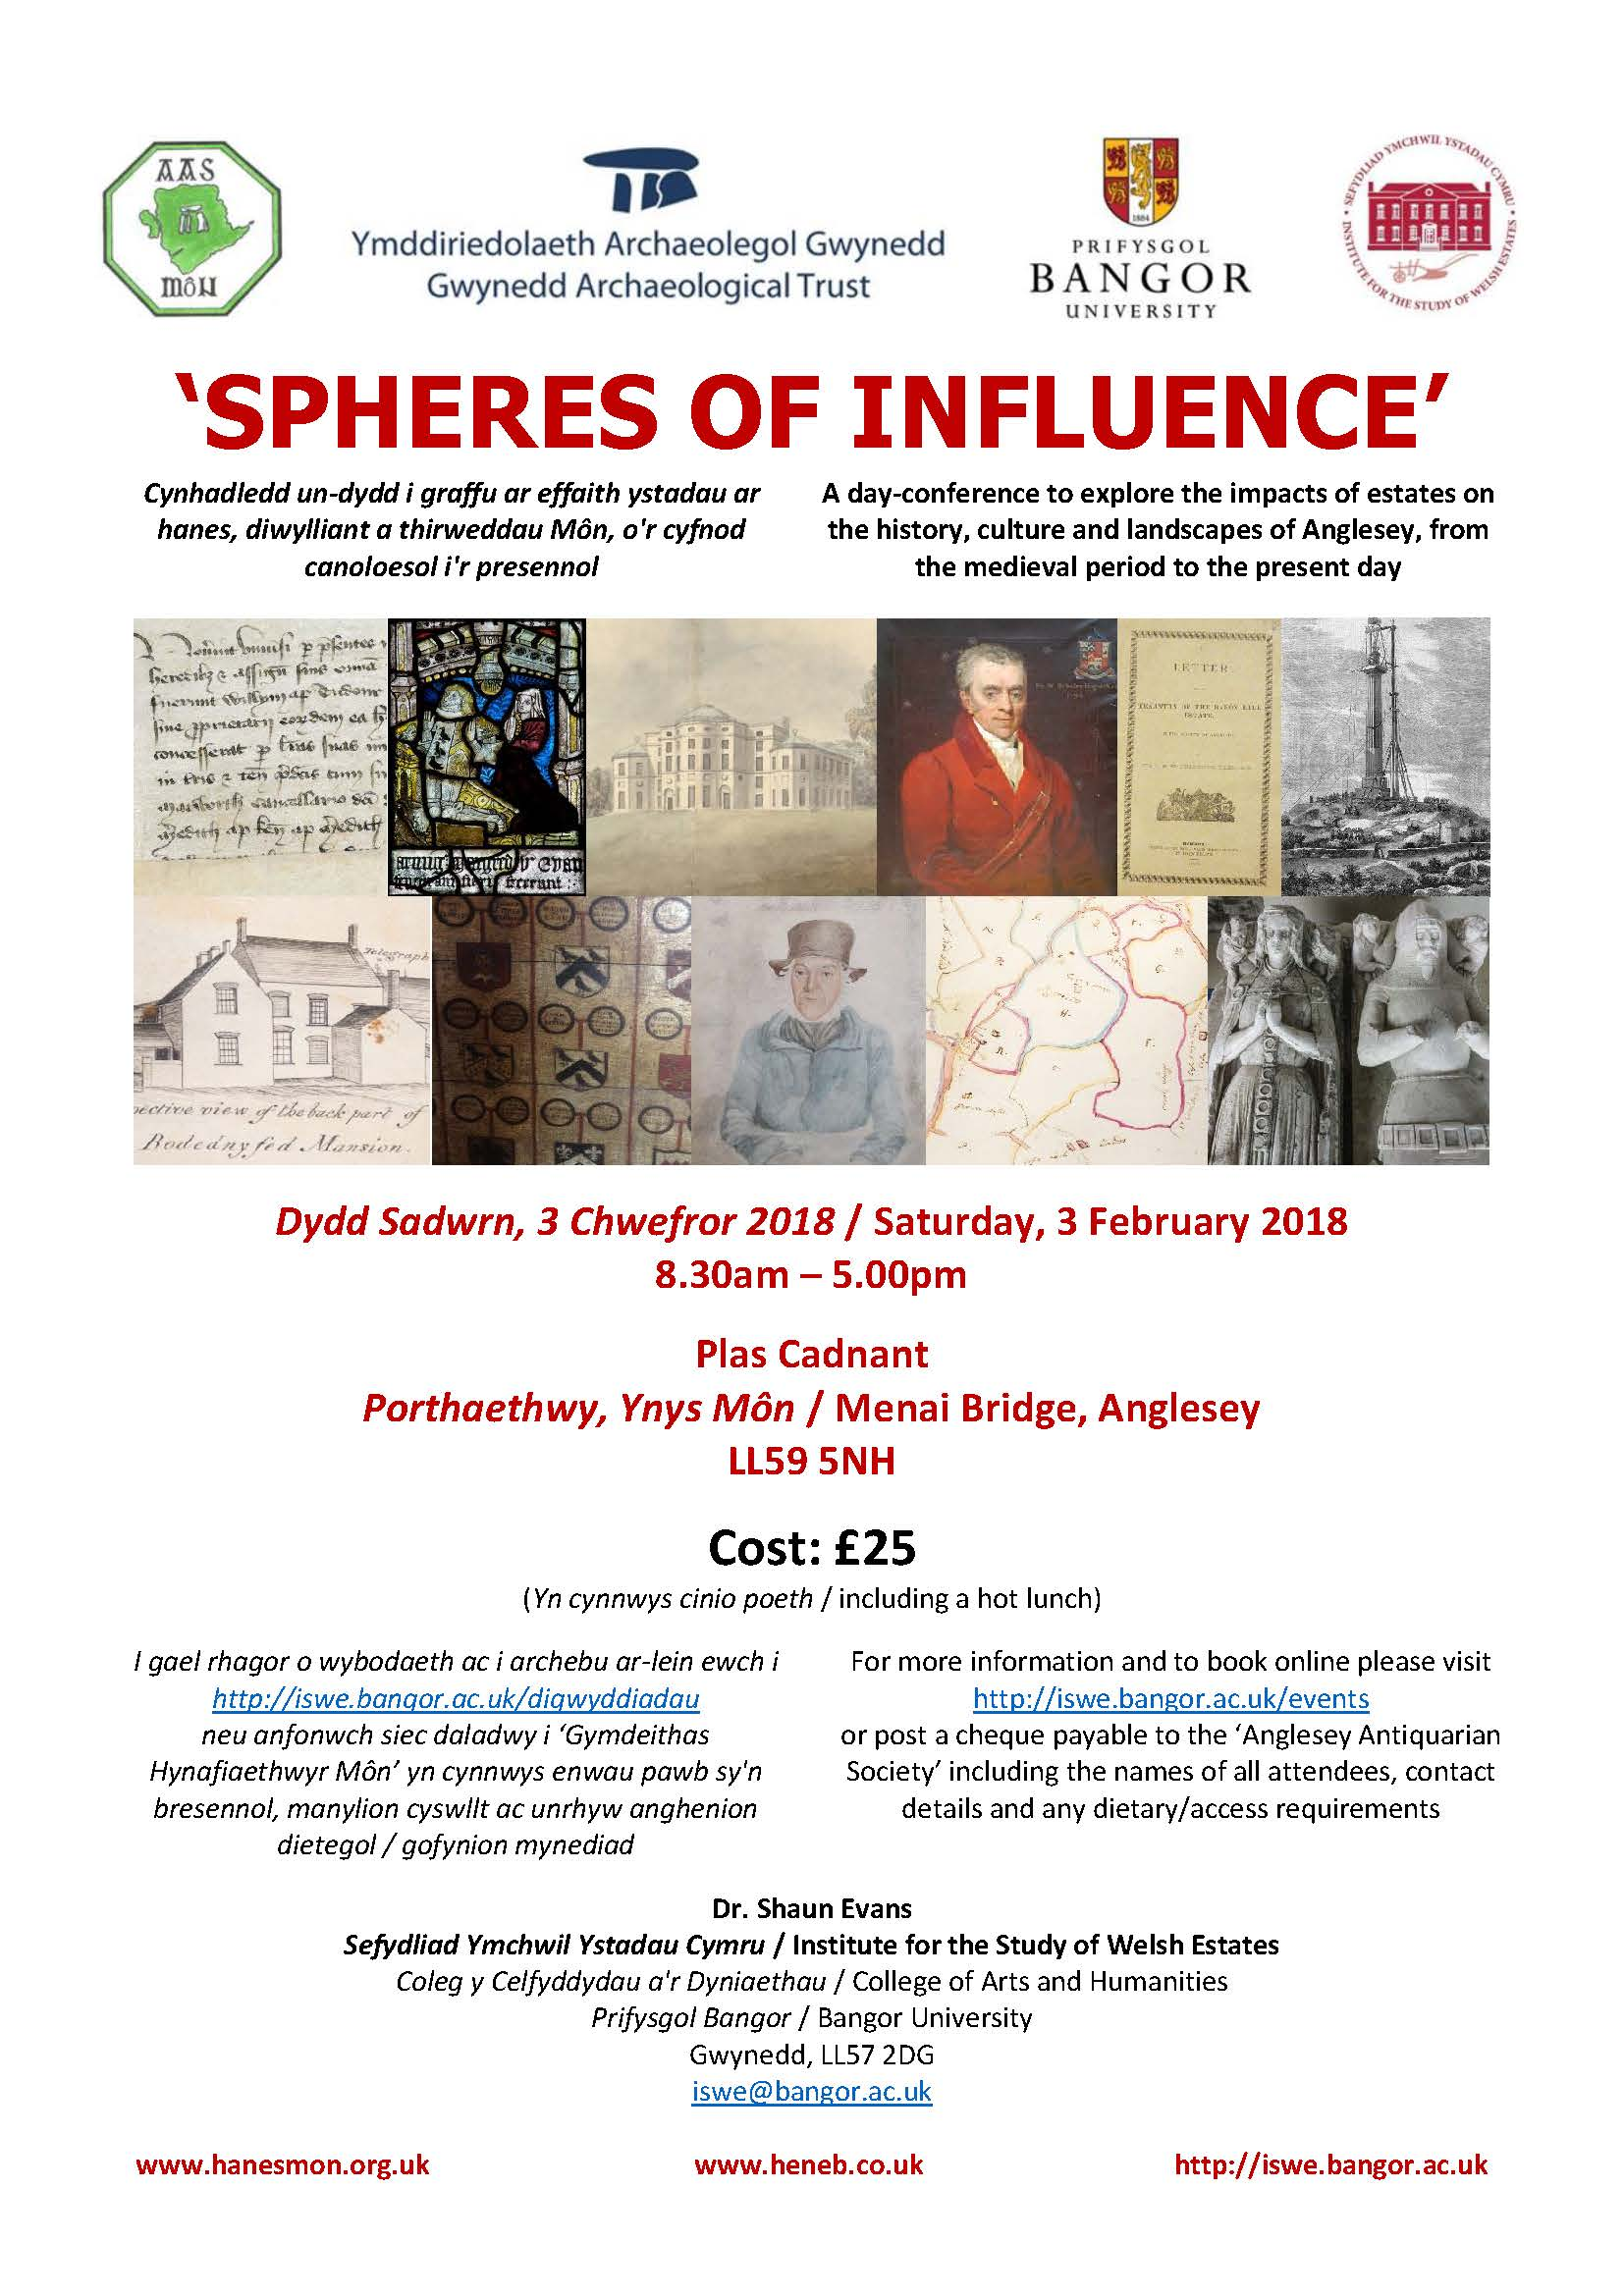 POSTER - 'SPHERES OF INFLUENCE'